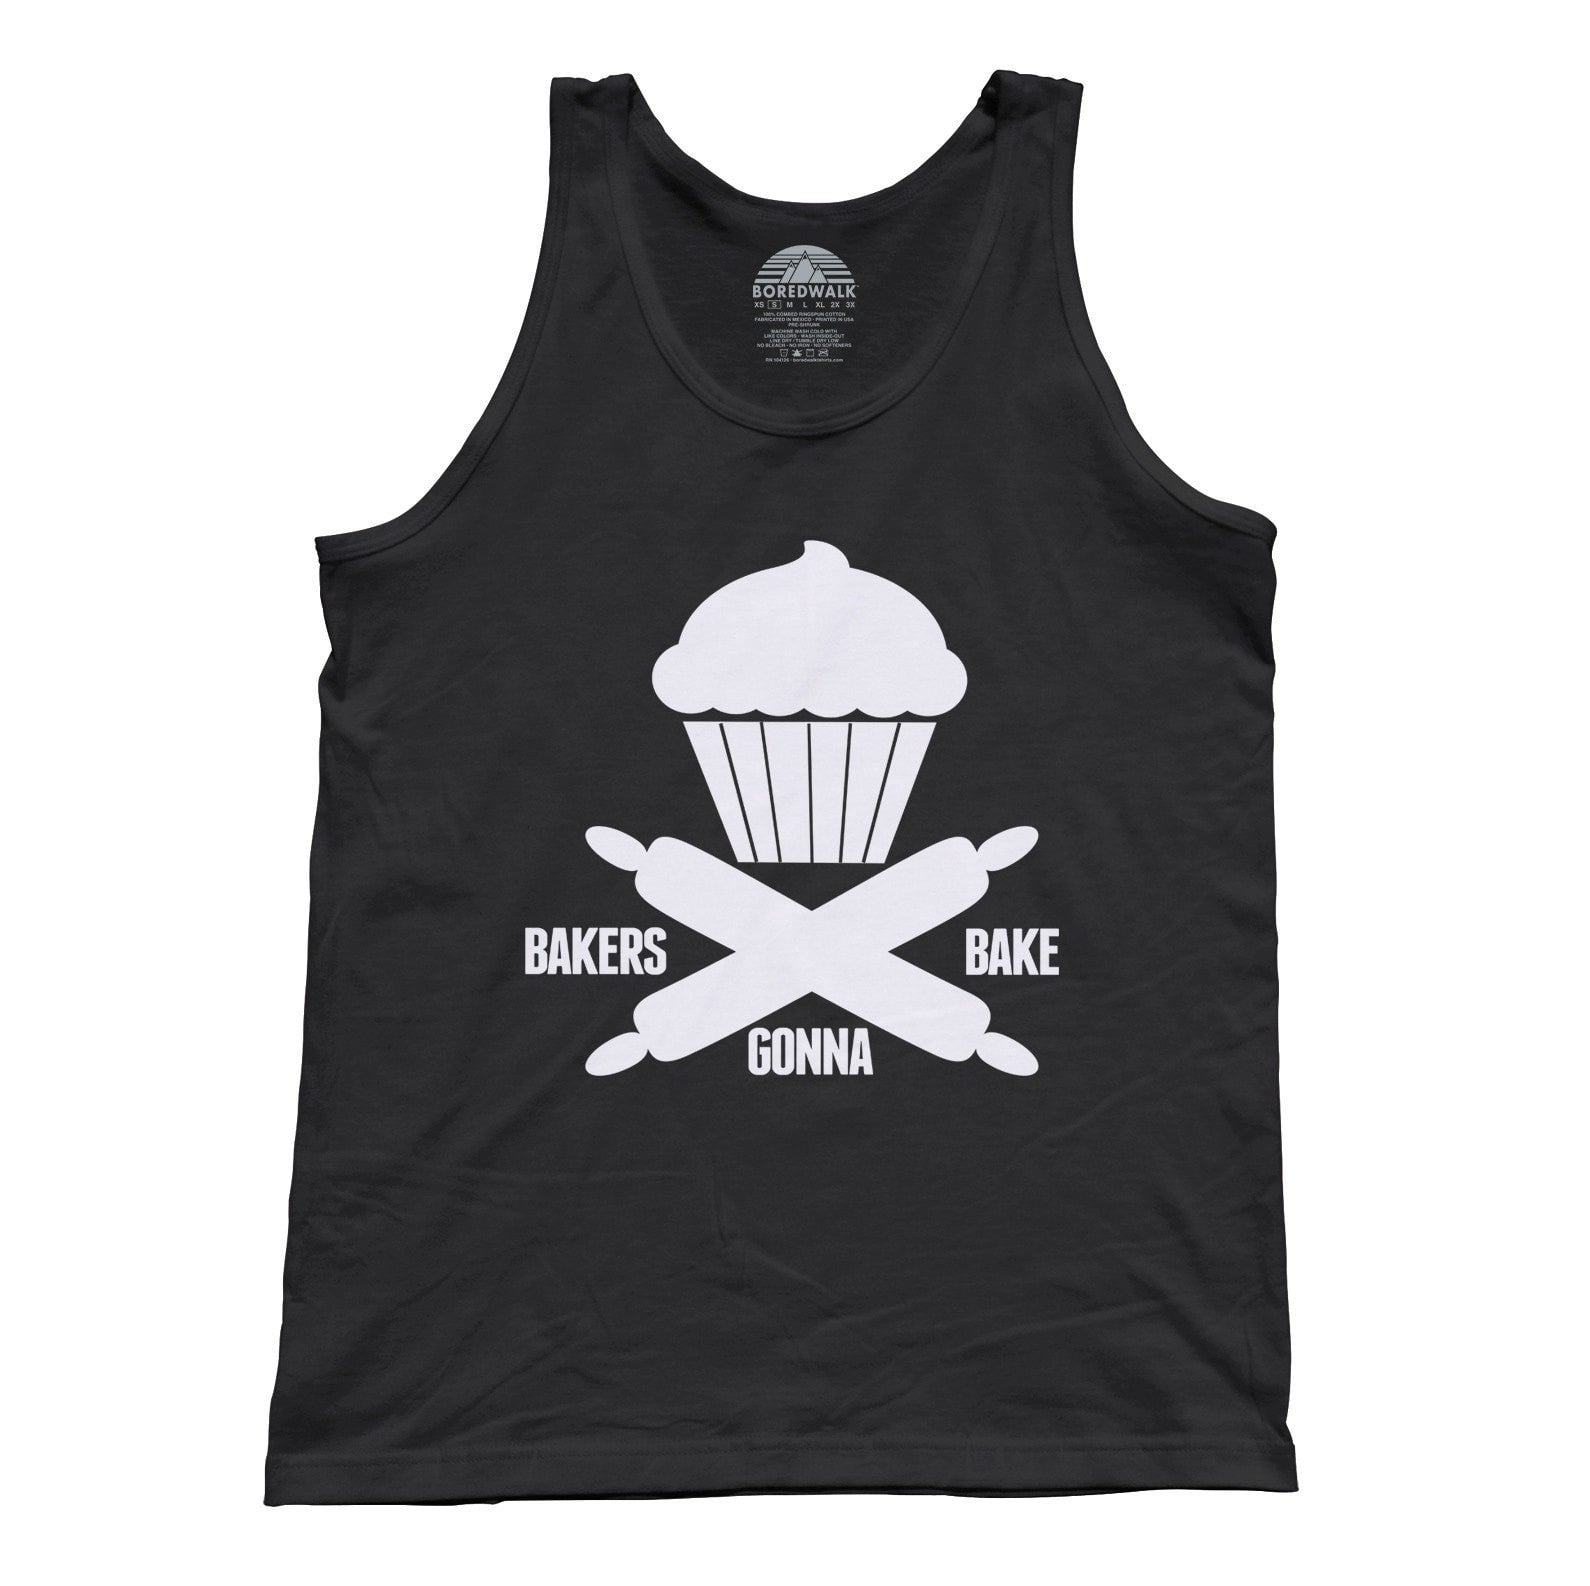 Unisex Bakers Gonna Bake Tank Top